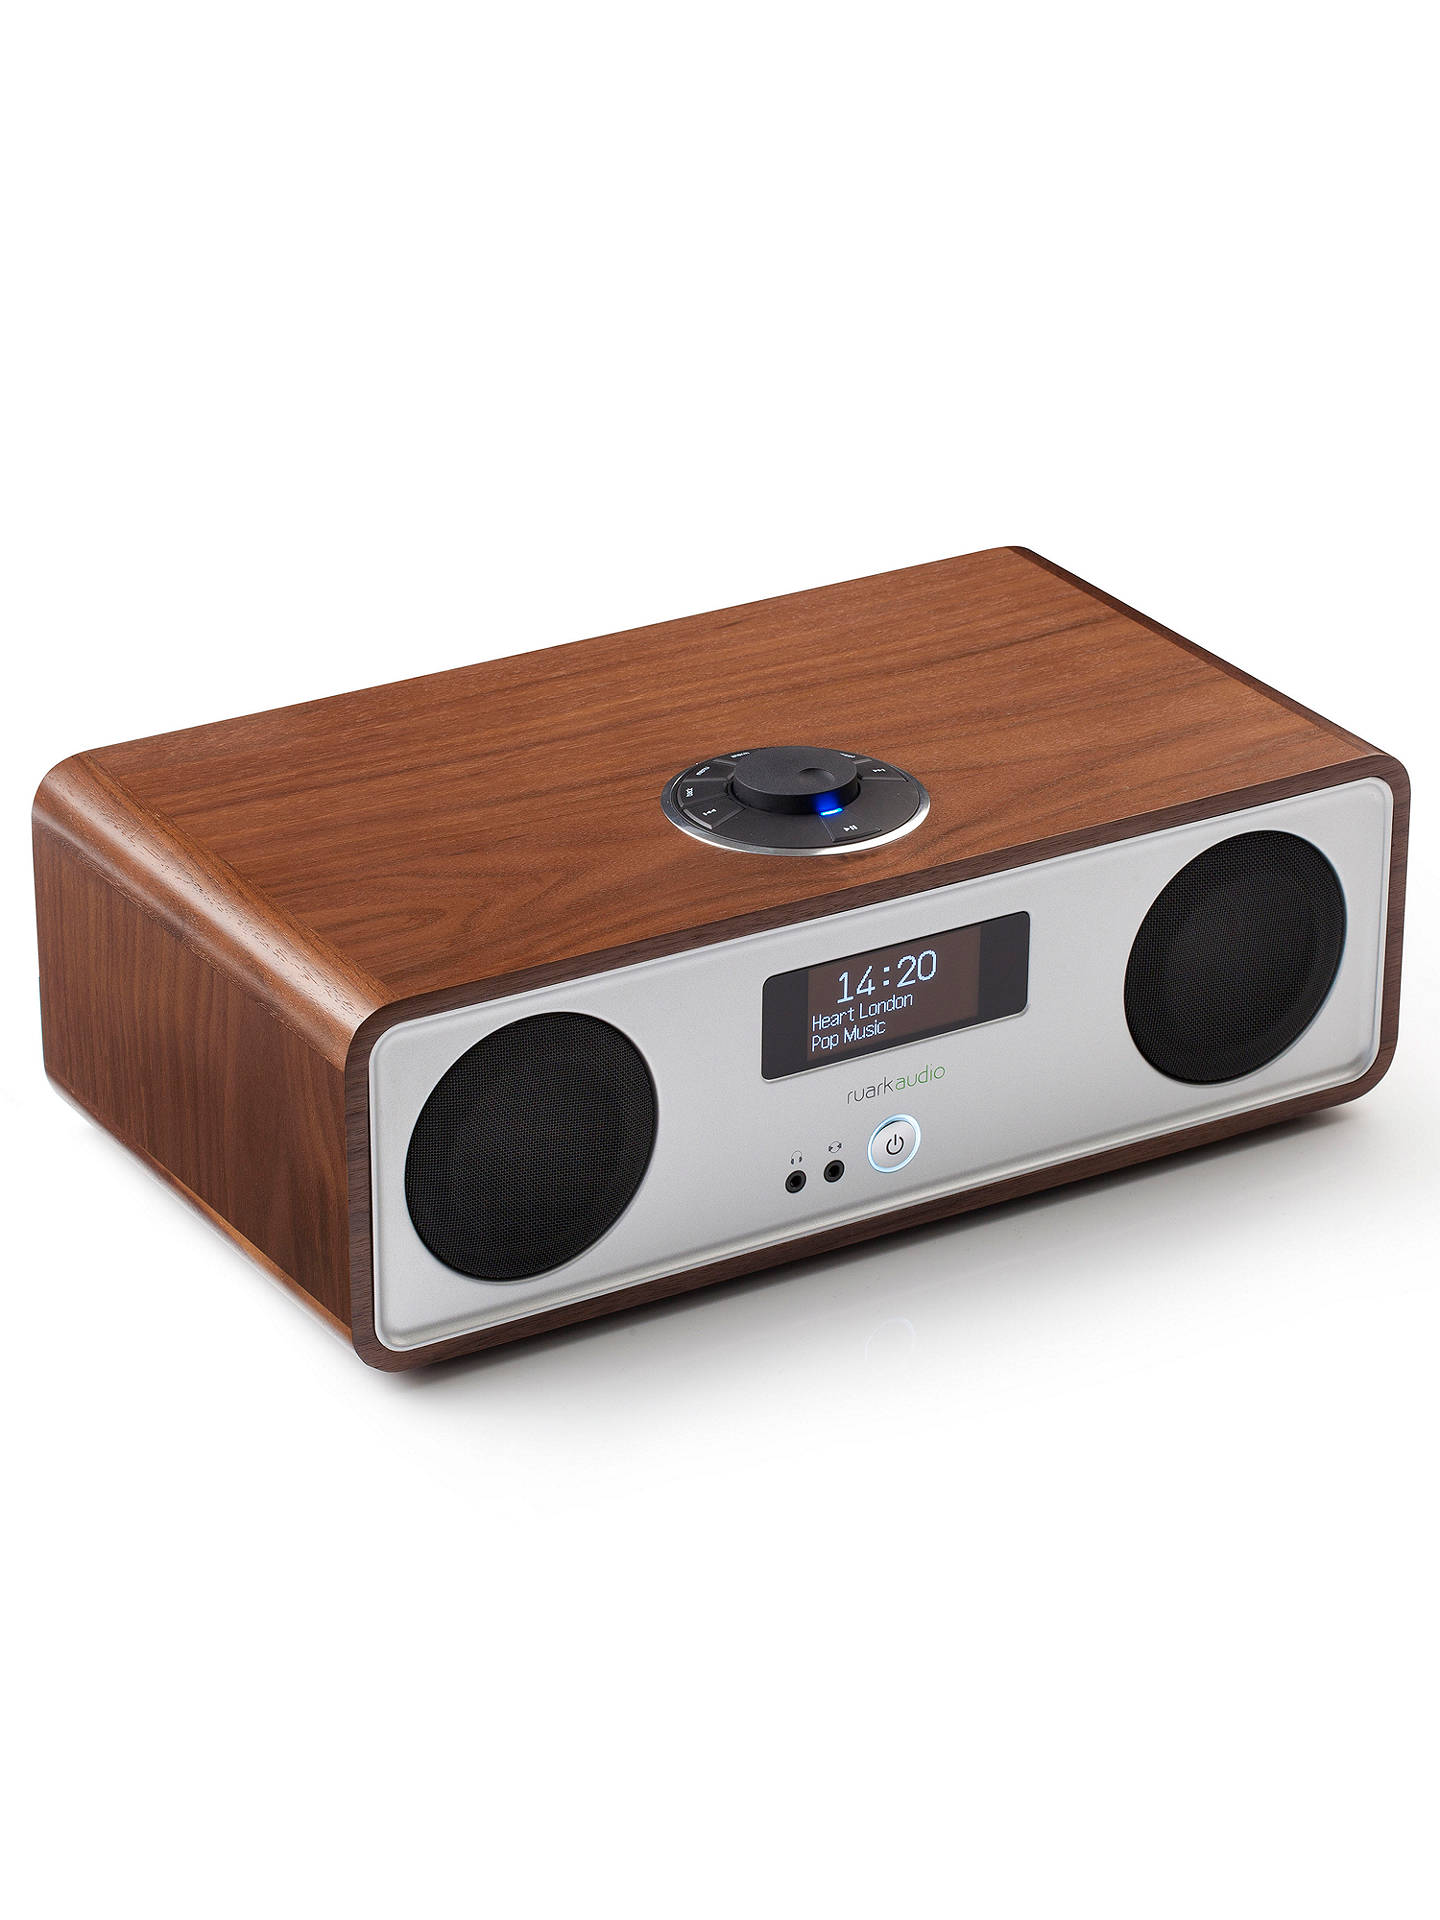 BuyRuark R2 MK3 DAB/FM/Internet Radio with Wi-Fi and Bluetooth, Walnut Online at johnlewis.com